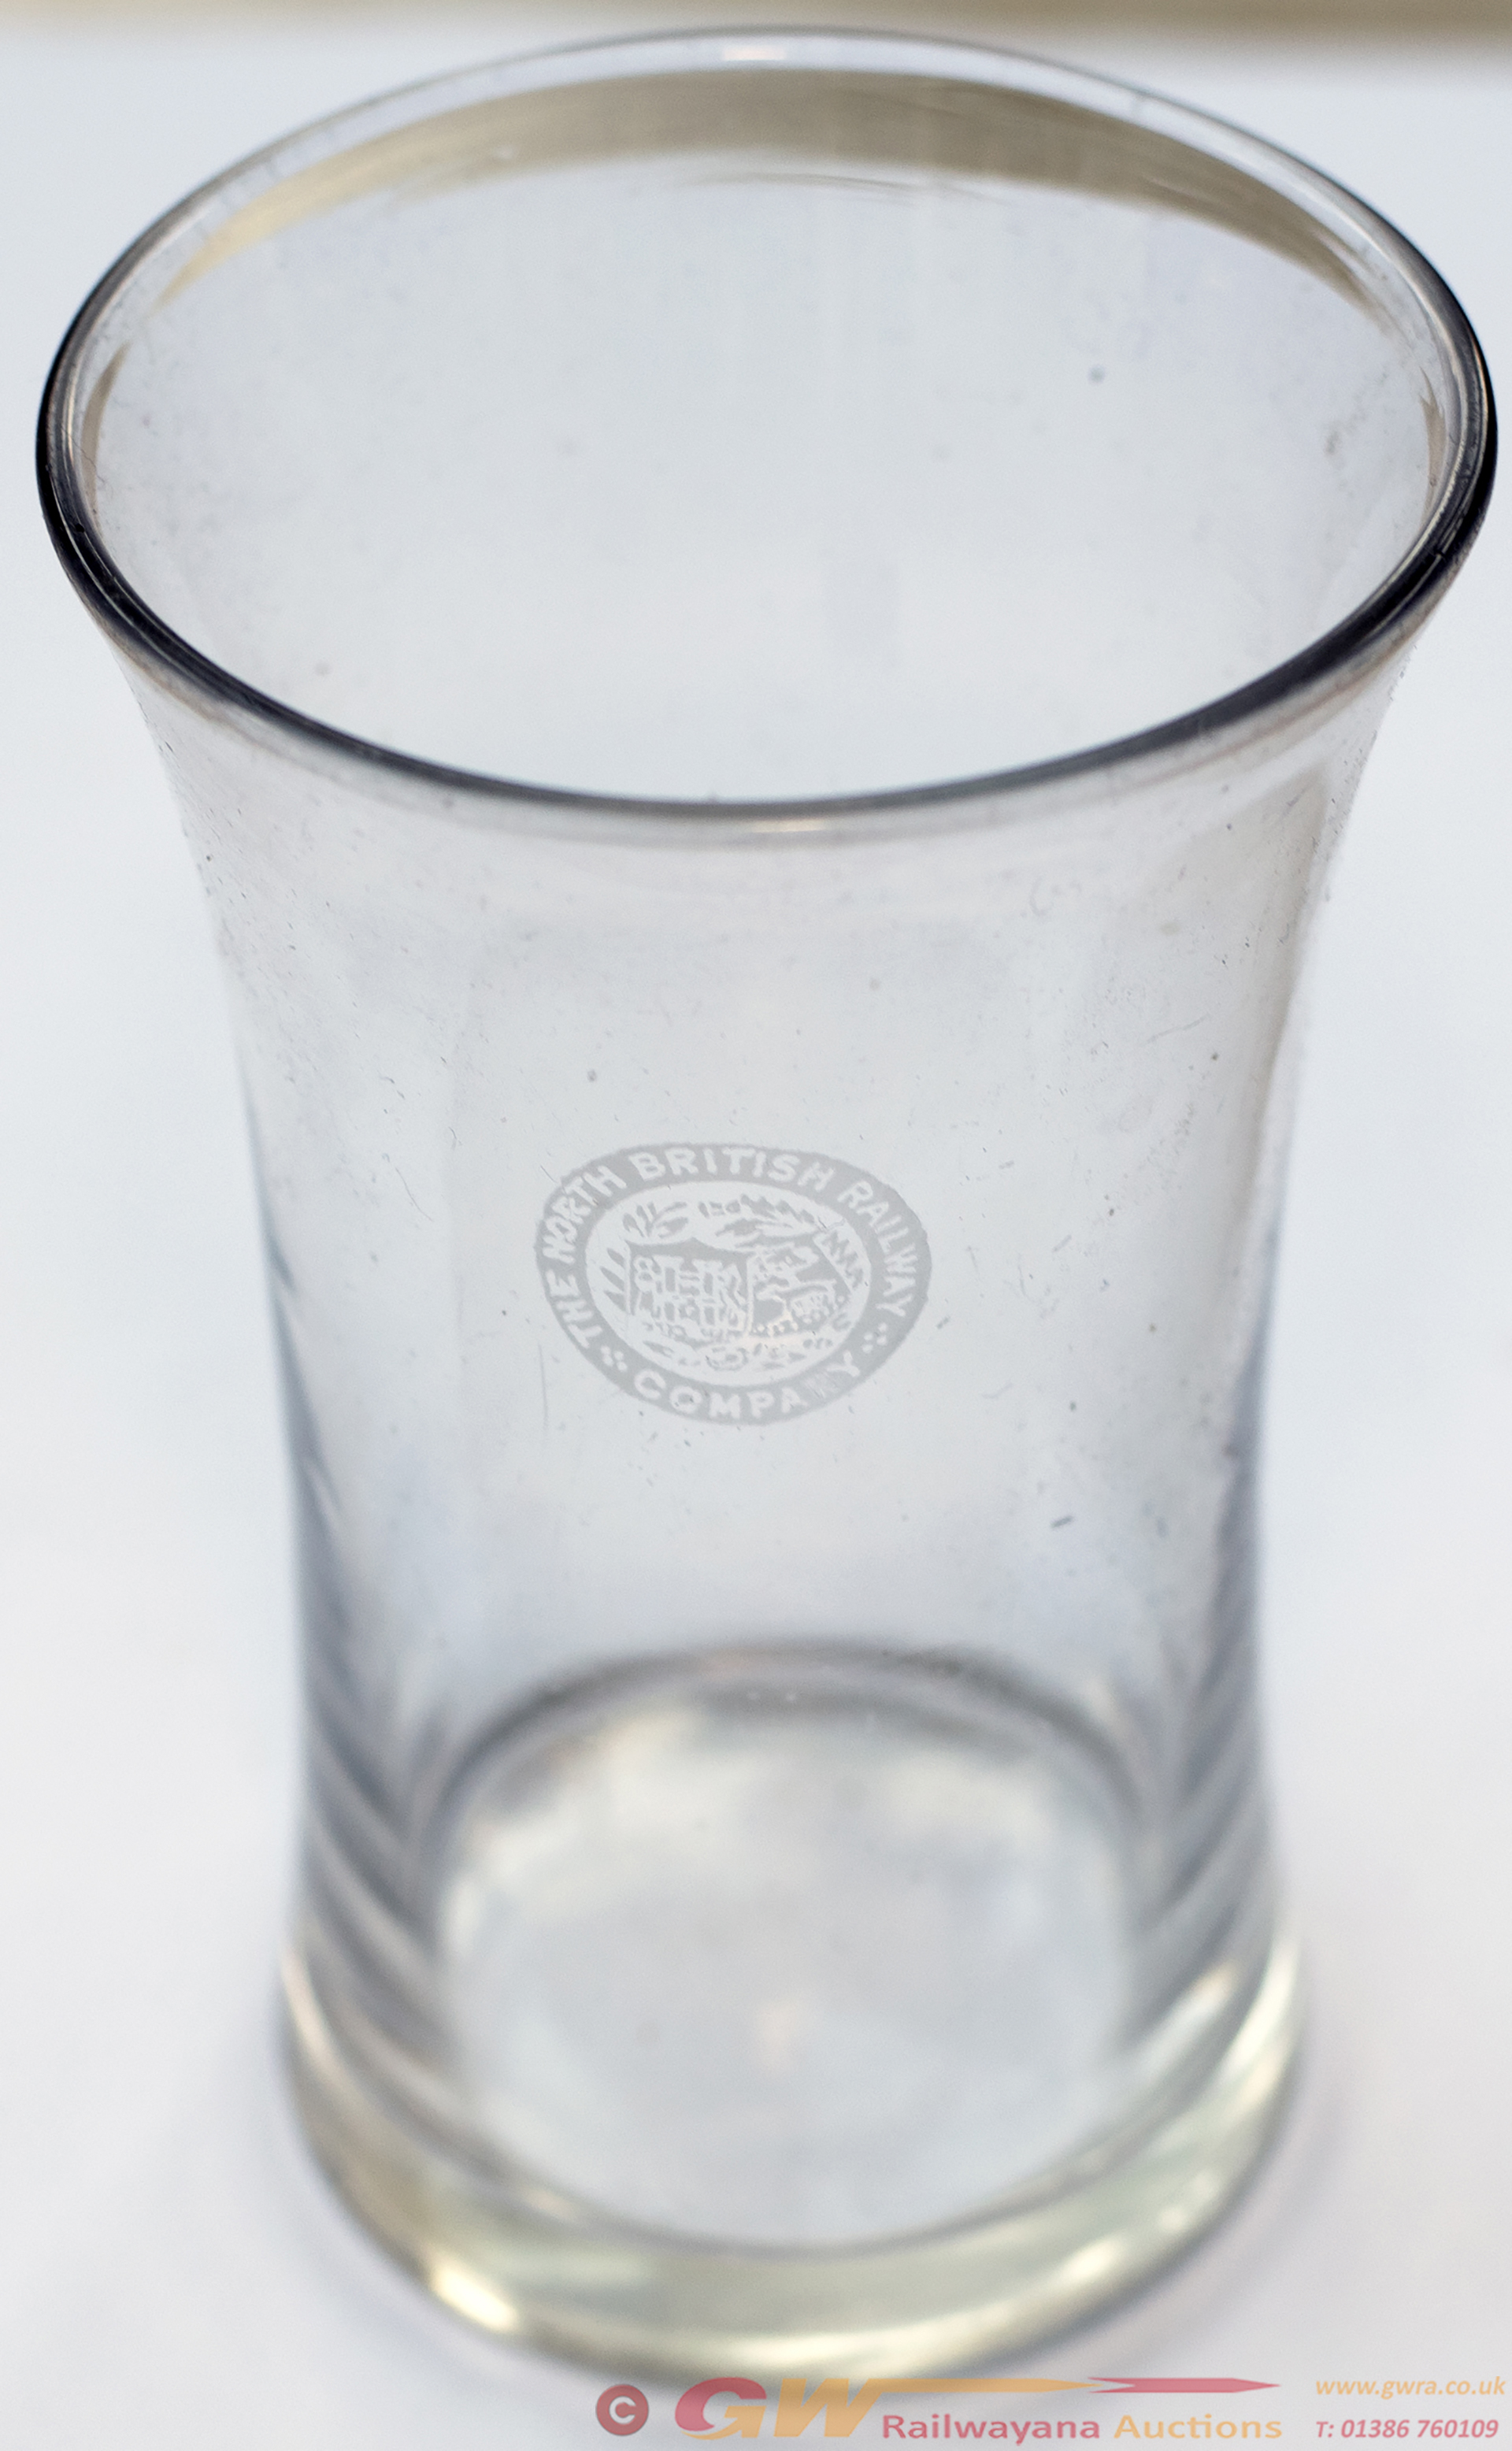 North British Railway Pint Glass Marked On The